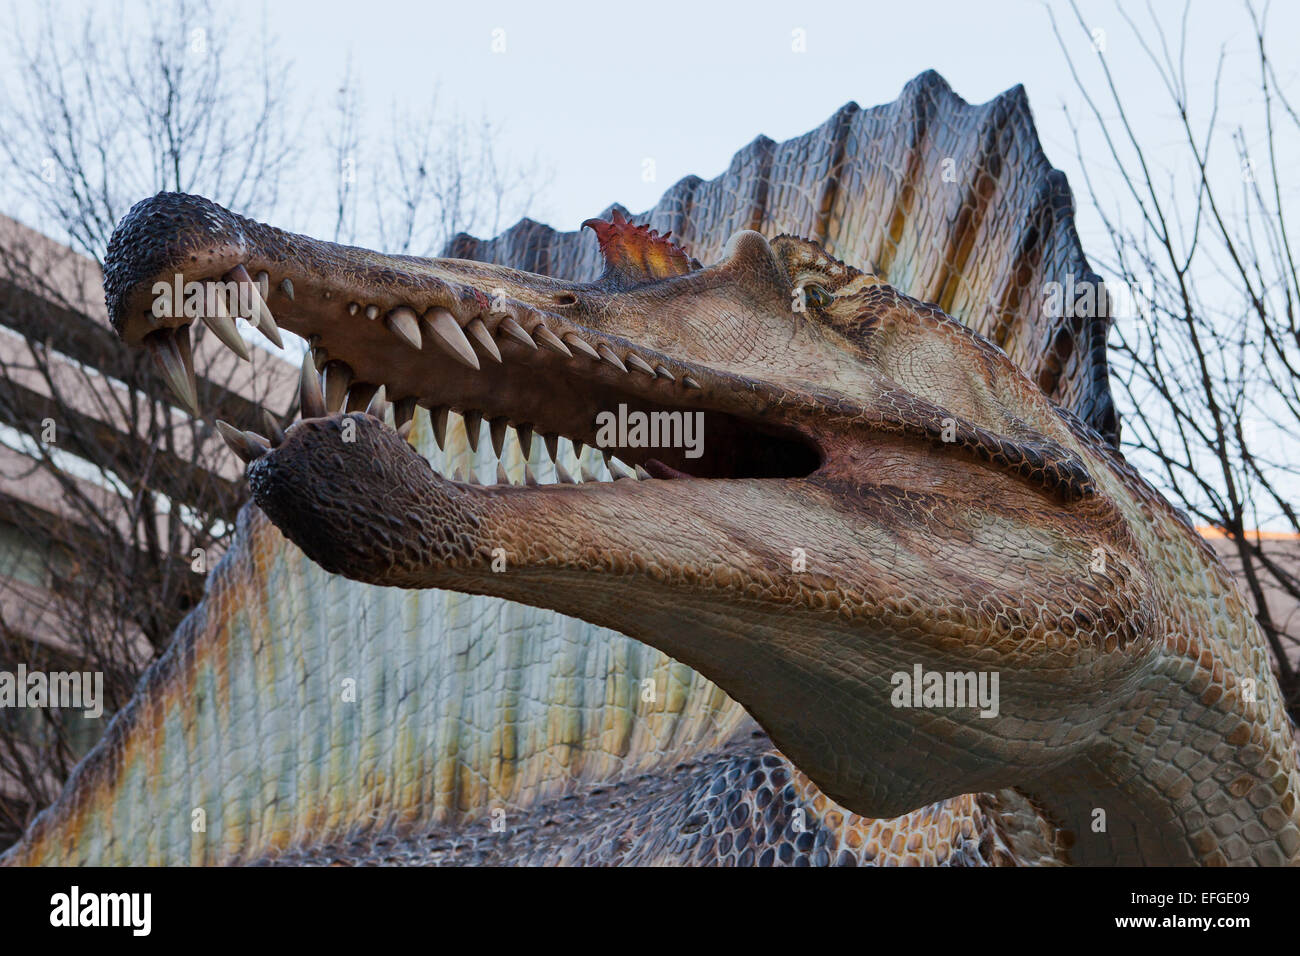 Spinosaurus sculpture in front of the National Geographic Society HQ - Washington, DC USA - Stock Image